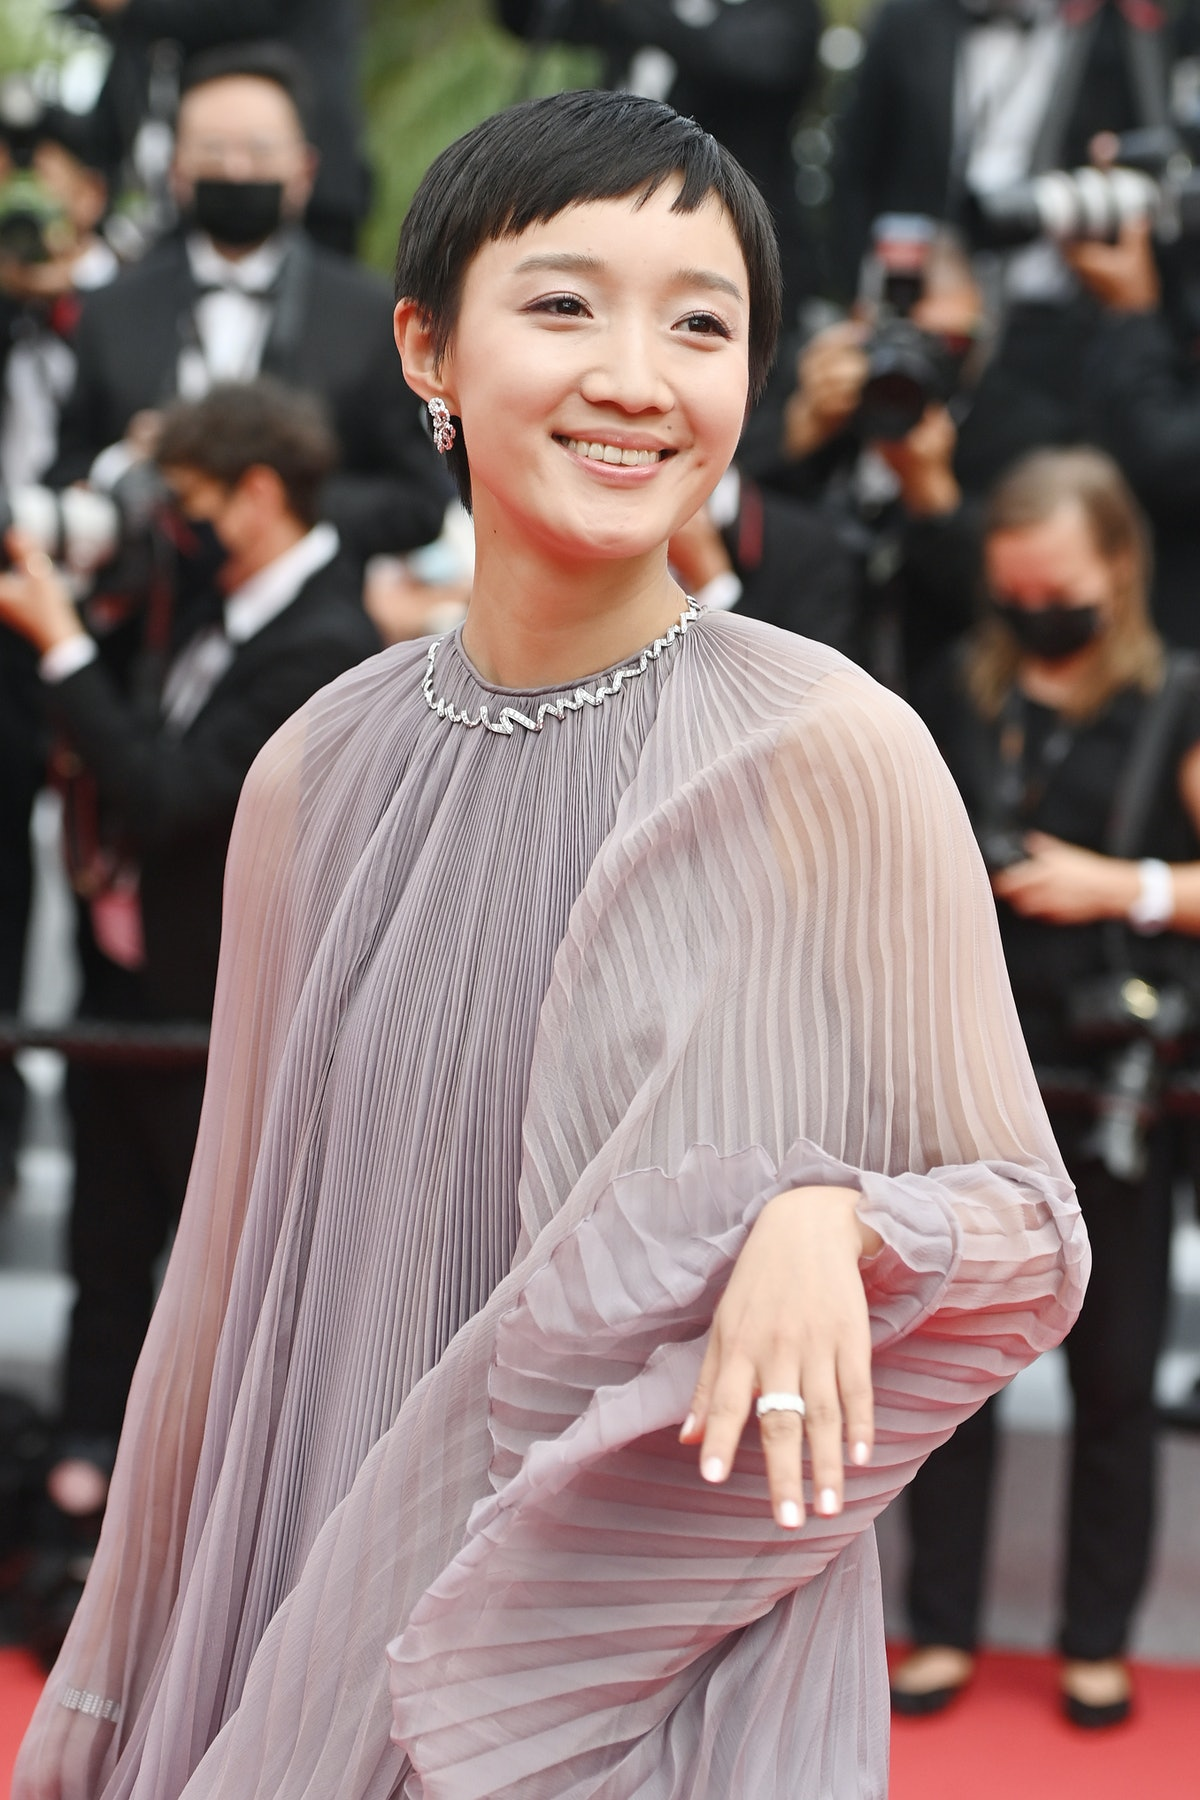 """CANNES, FRANCE - JULY 12: Huang Miyi attends the """"The French Dispatch"""" screening during the 74th annual Cannes Film Festival on July 12, 2021 in Cannes, France. (Photo by Kate Green/Getty Images)"""